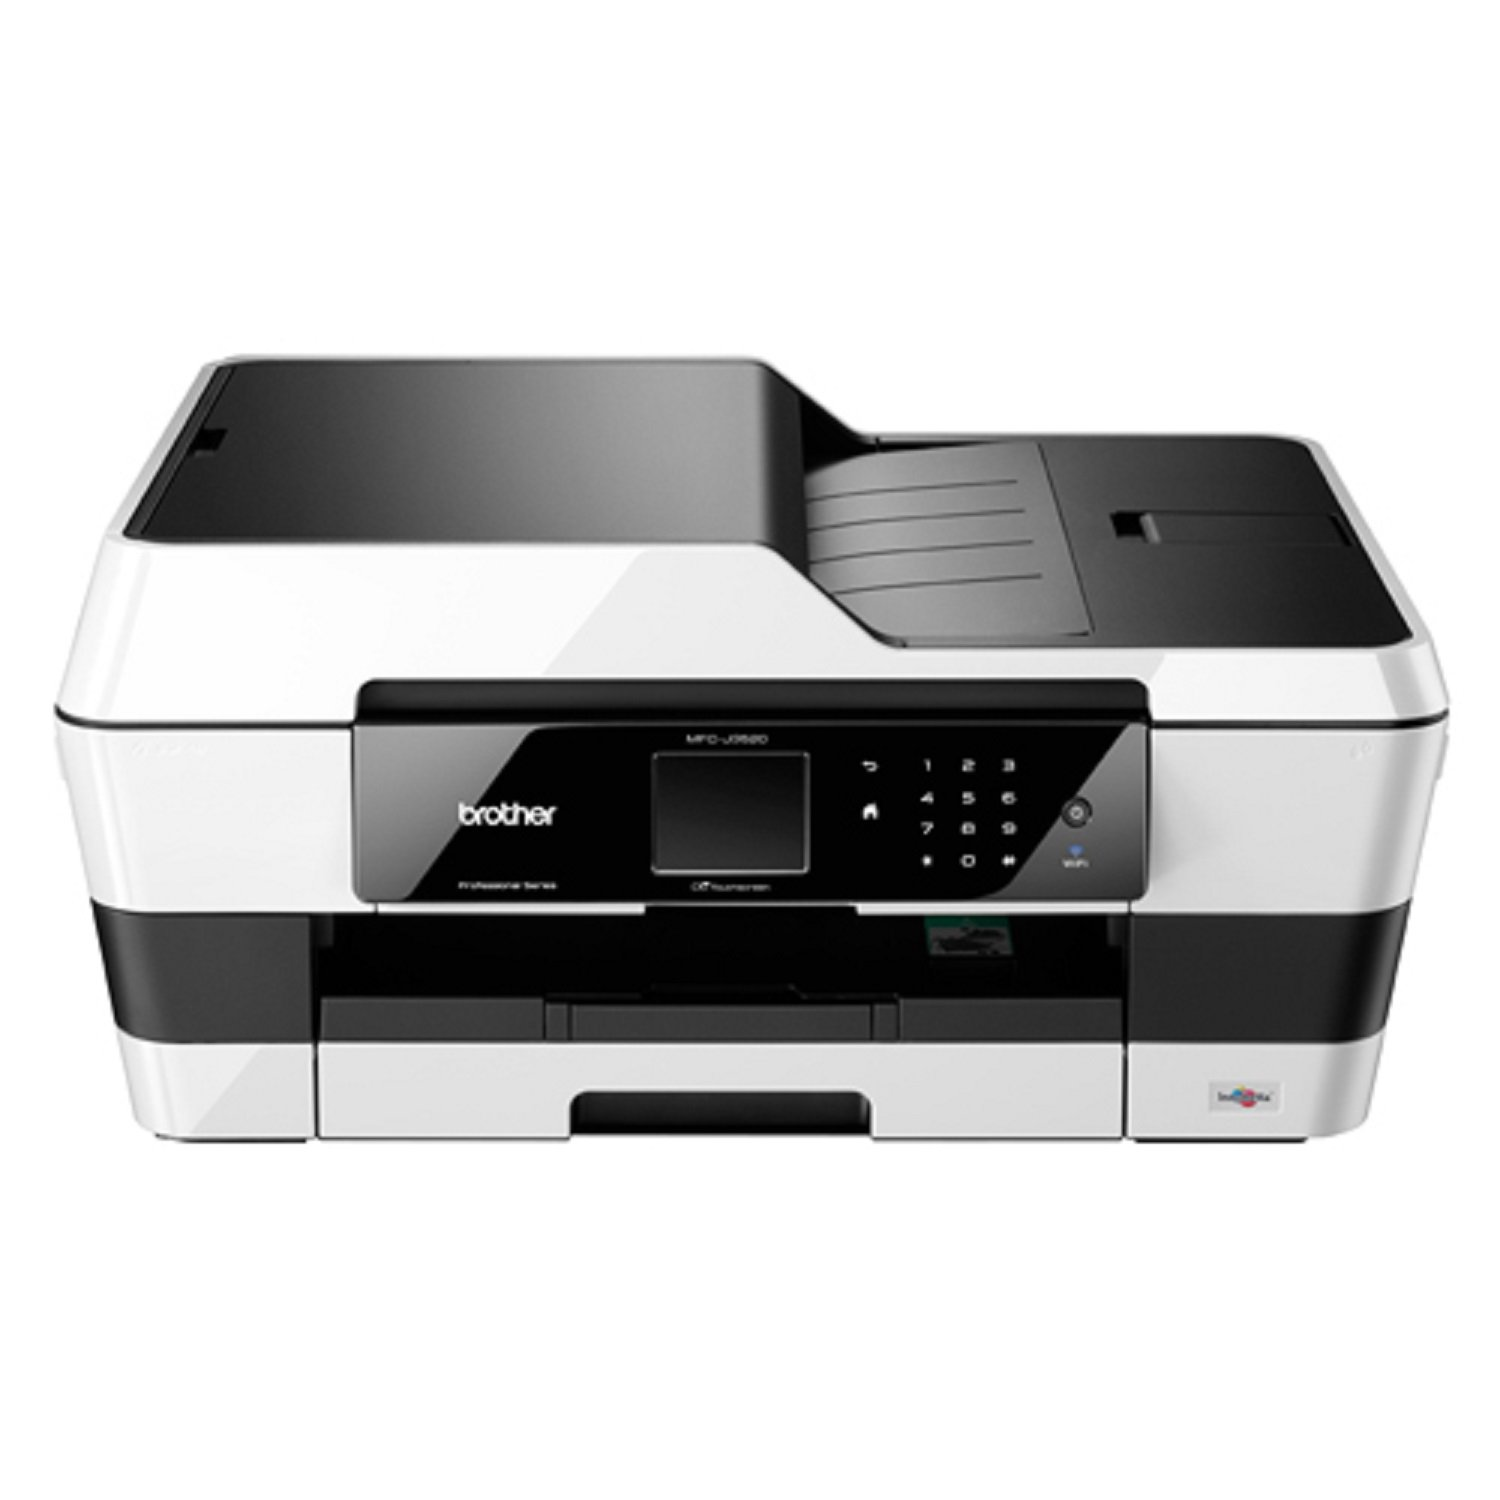 Laser printer a3 size black and white dresses